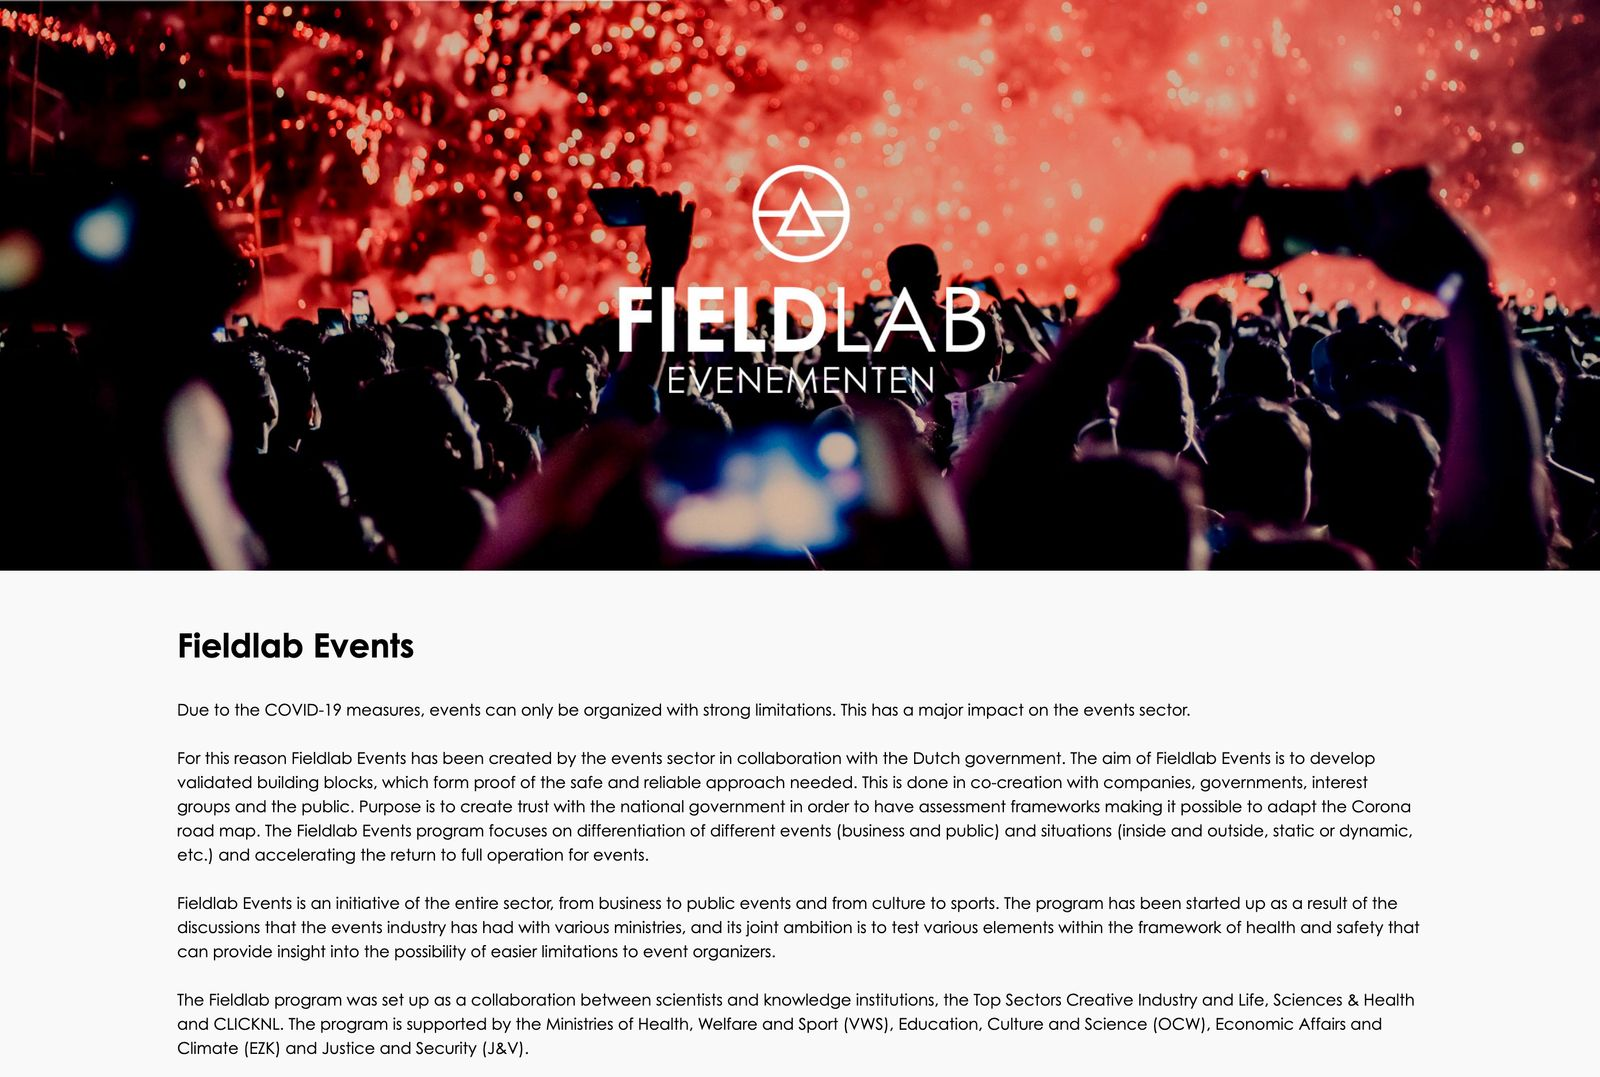 Niederlande/ Fieldlab Events